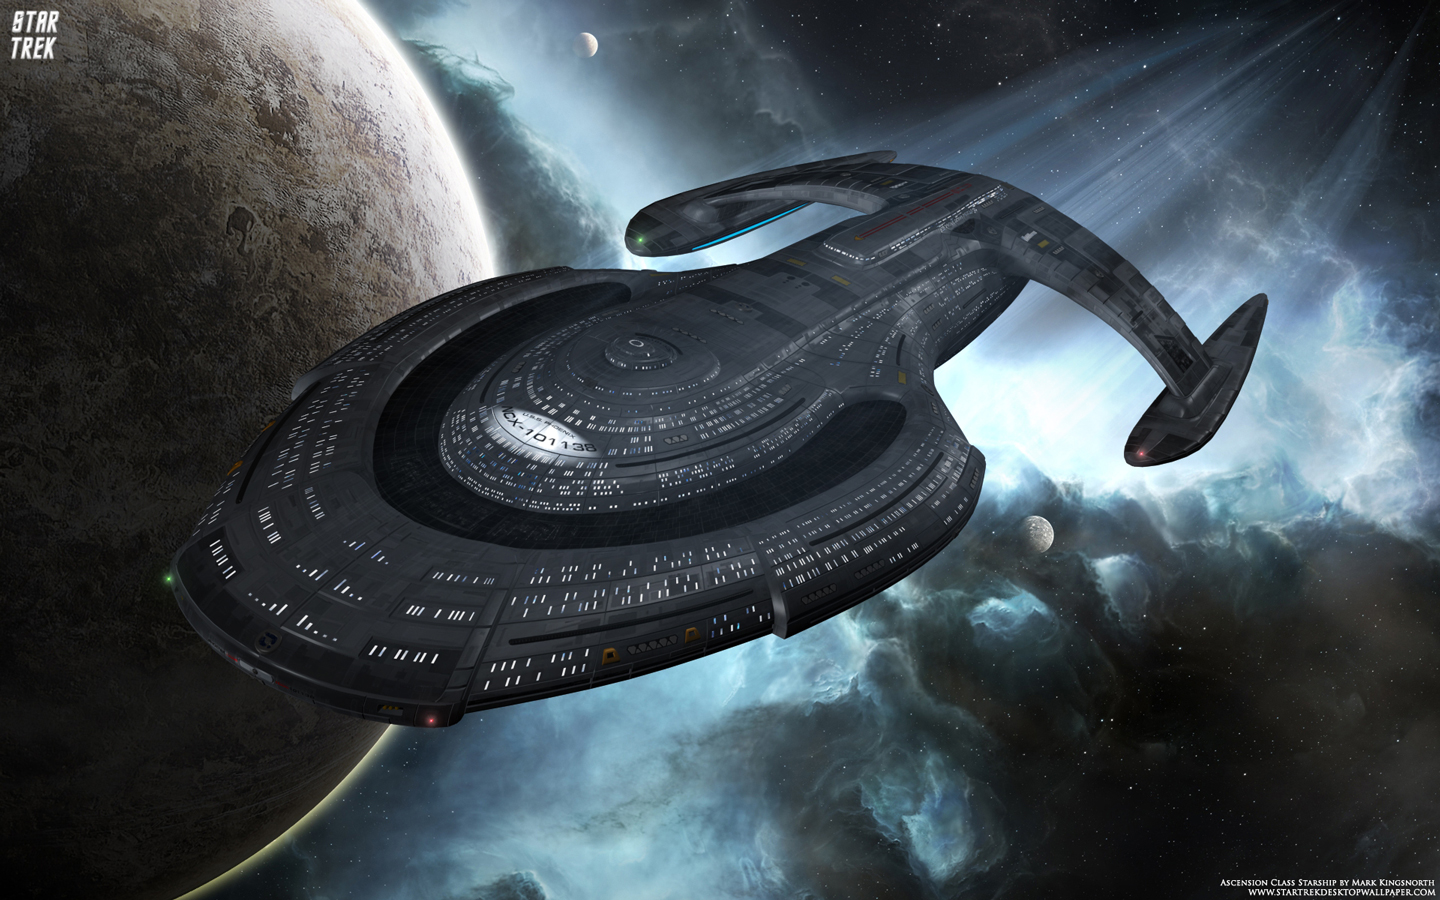 Starship   Star Trek computer desktop wallpaper pictures images 1440x900